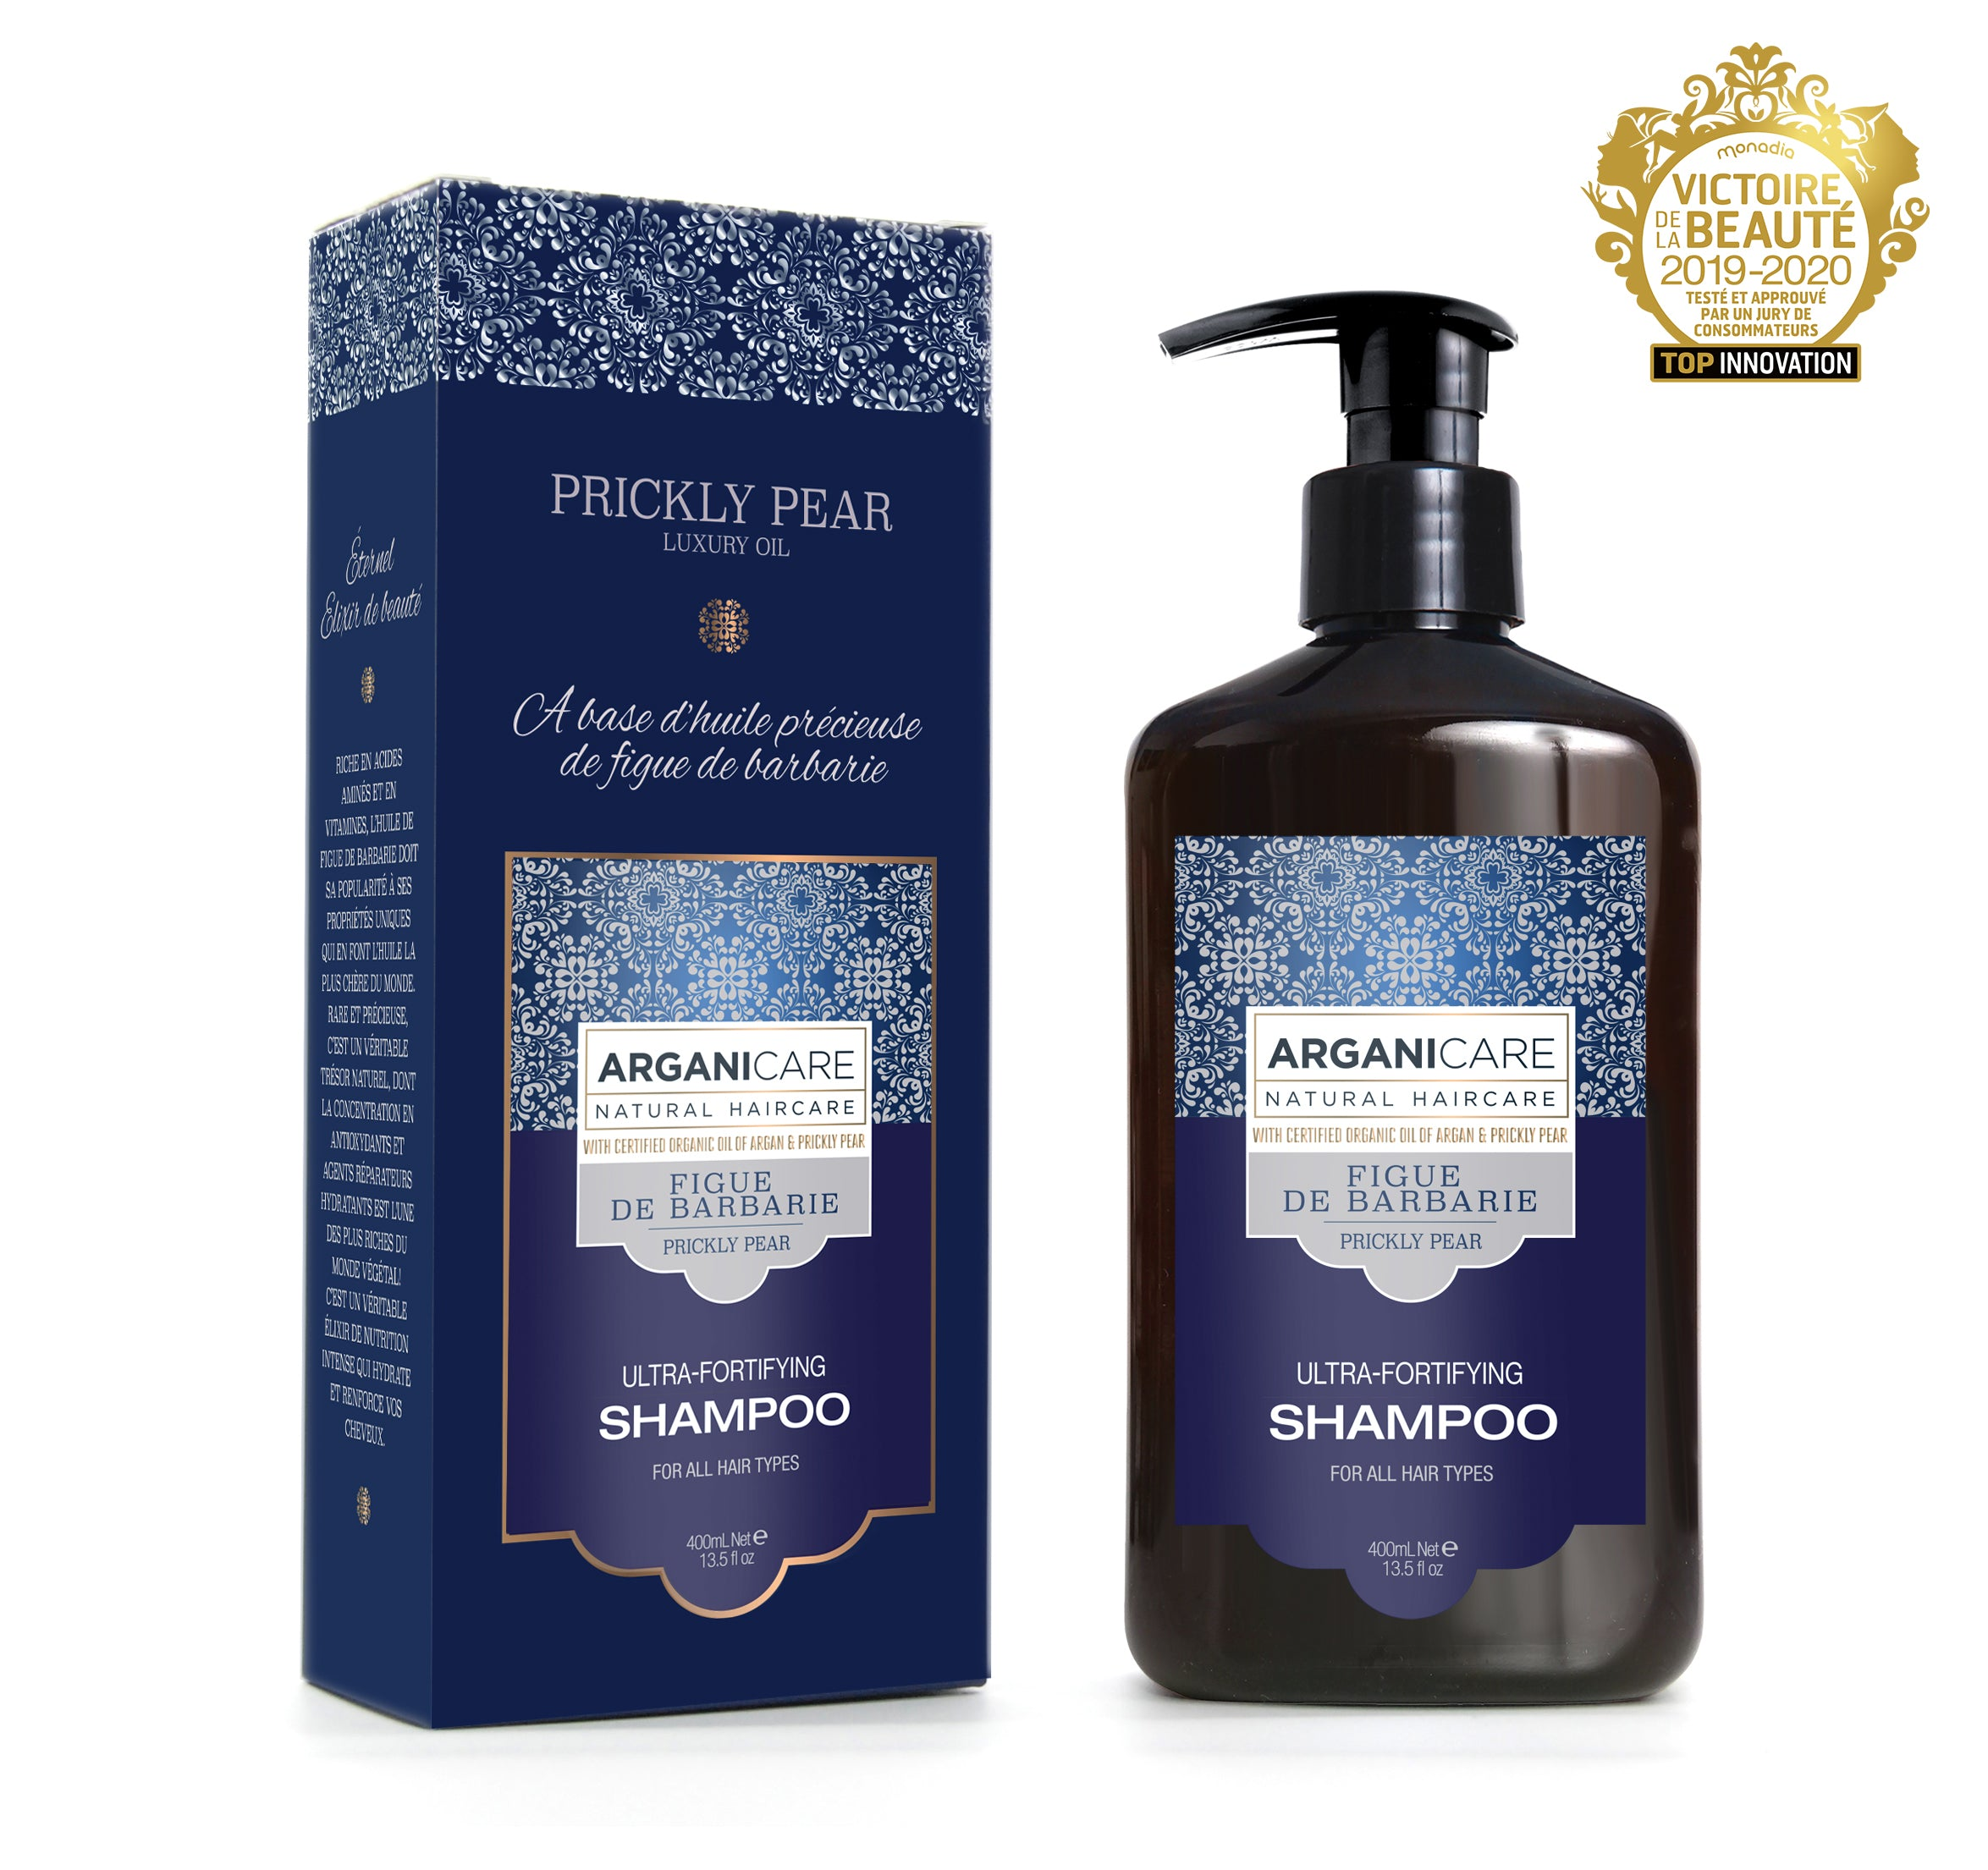 Arganicare Prickly Pear Shampoo 400ml